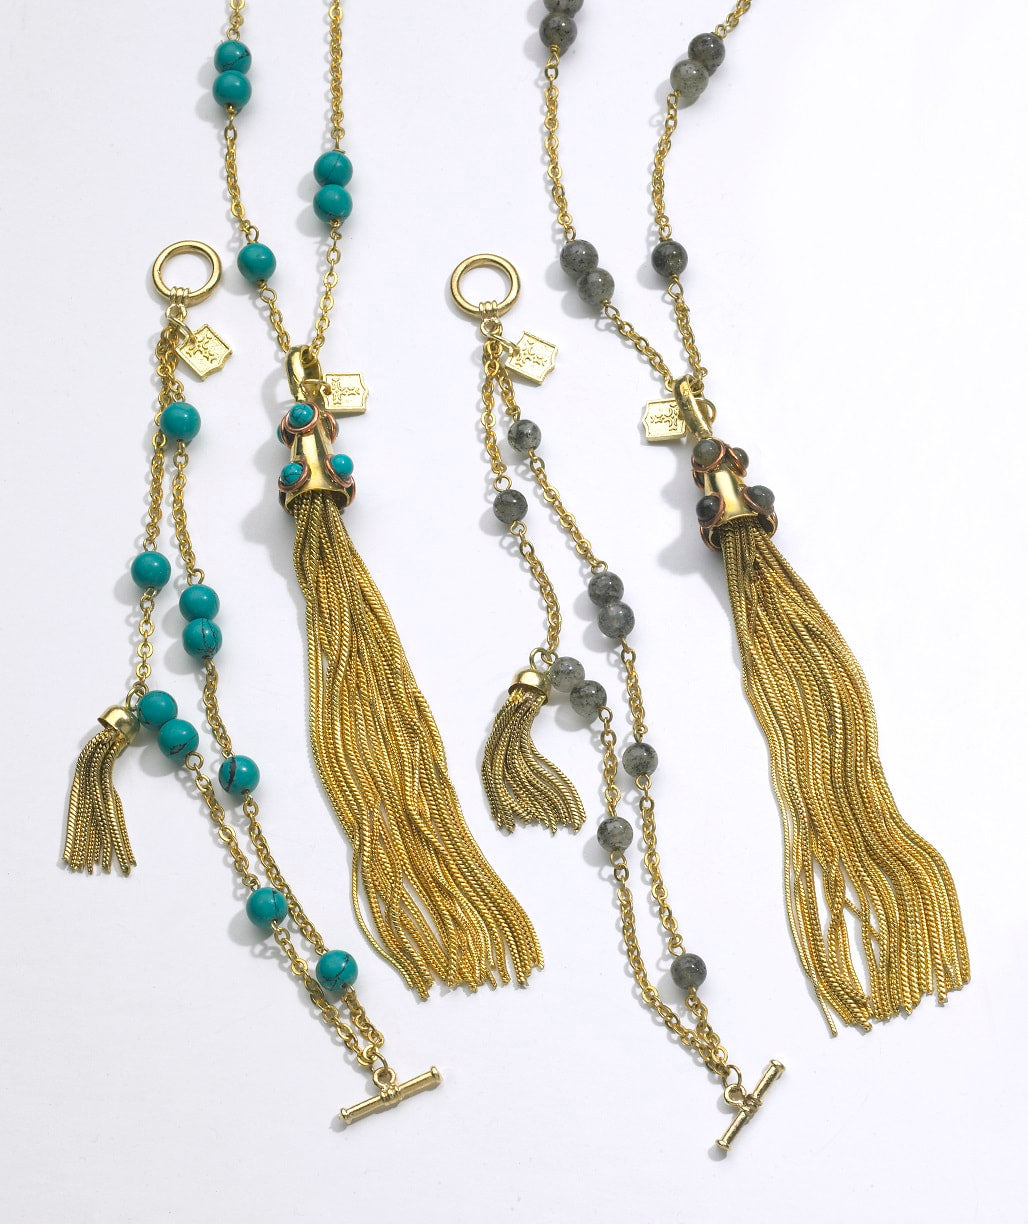 Stone studded tassel and chain necklaces and bracelets